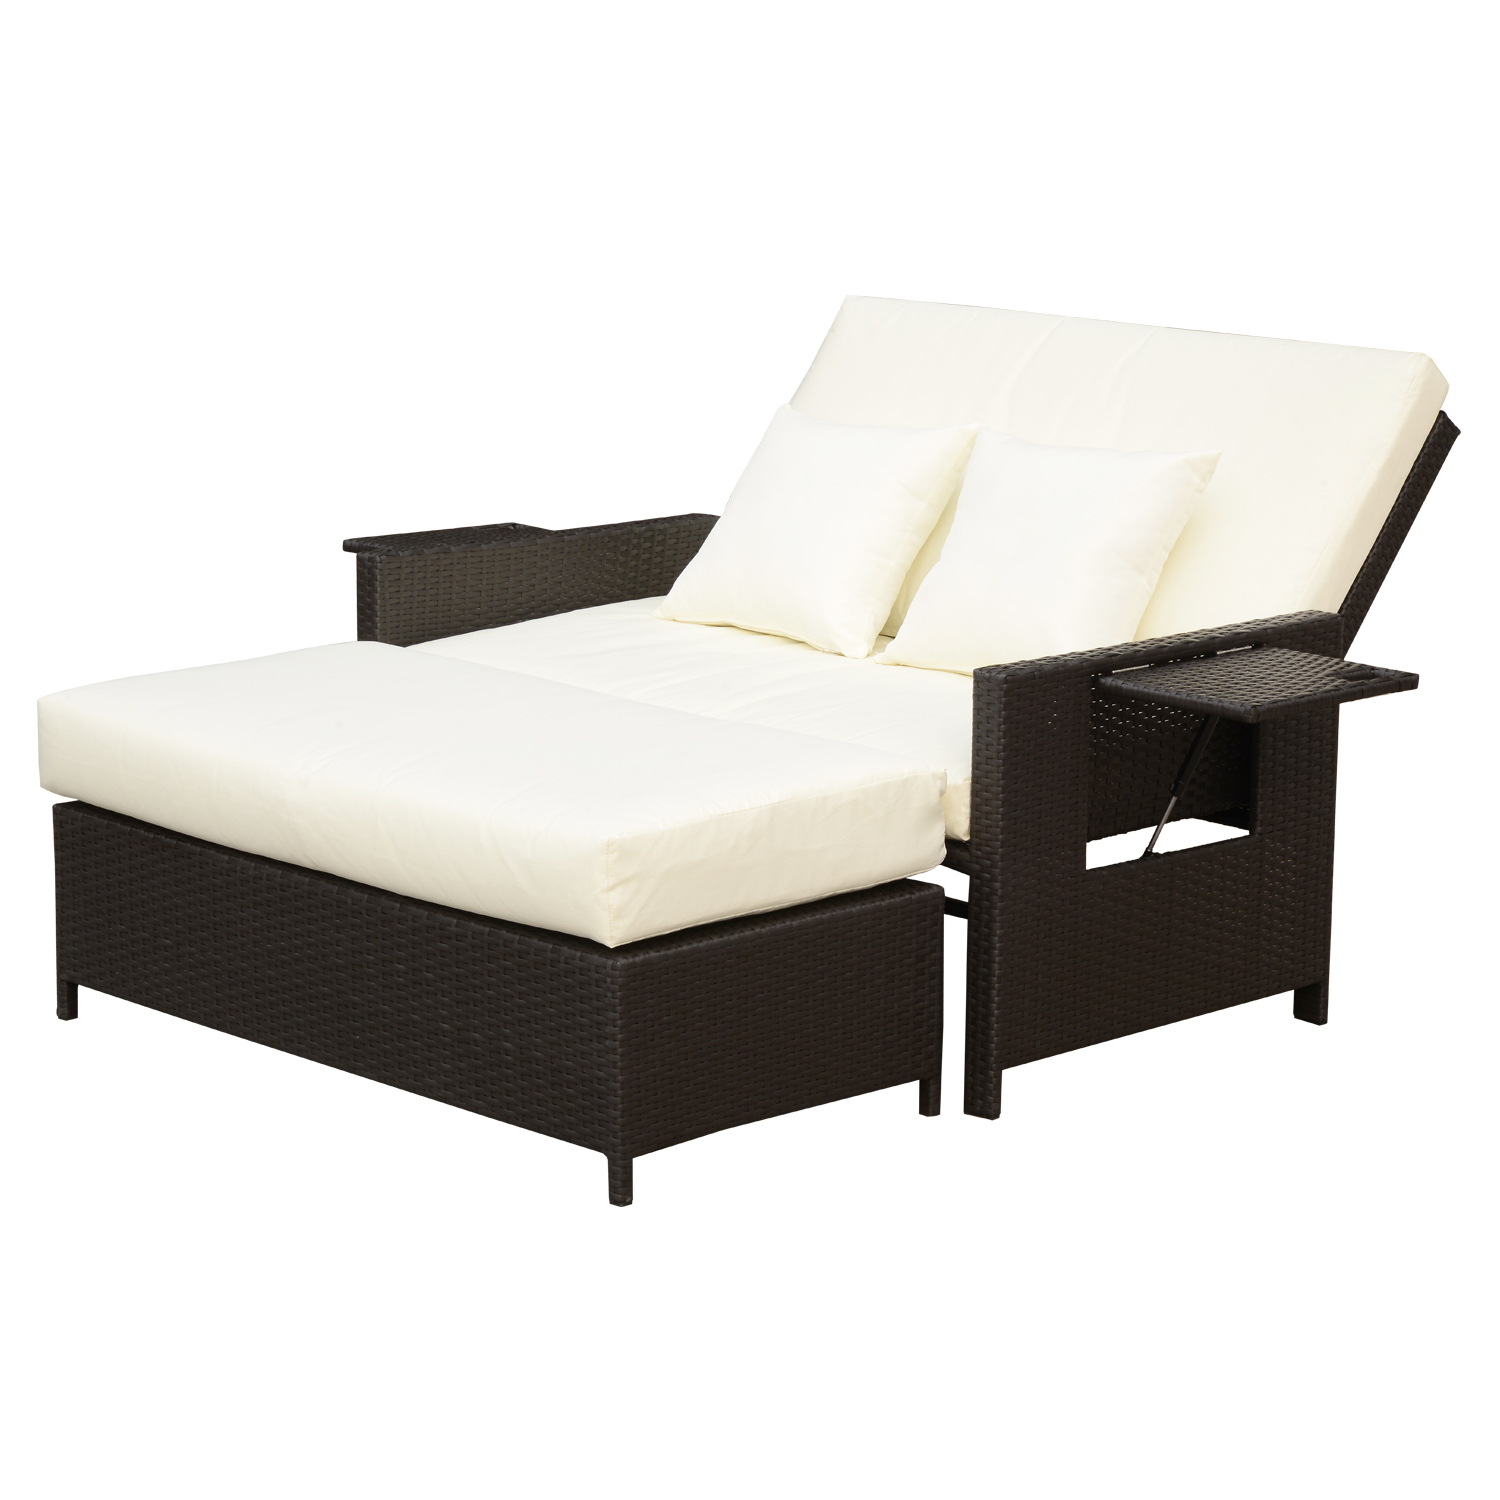 Best And Newest Outsunny 2 Piece Outdoor Rattan Wicker Chaise Lounge And Ottoman Set  Cushioned Intended For All Weather Rattan Wicker Chaise Lounges (View 11 of 25)